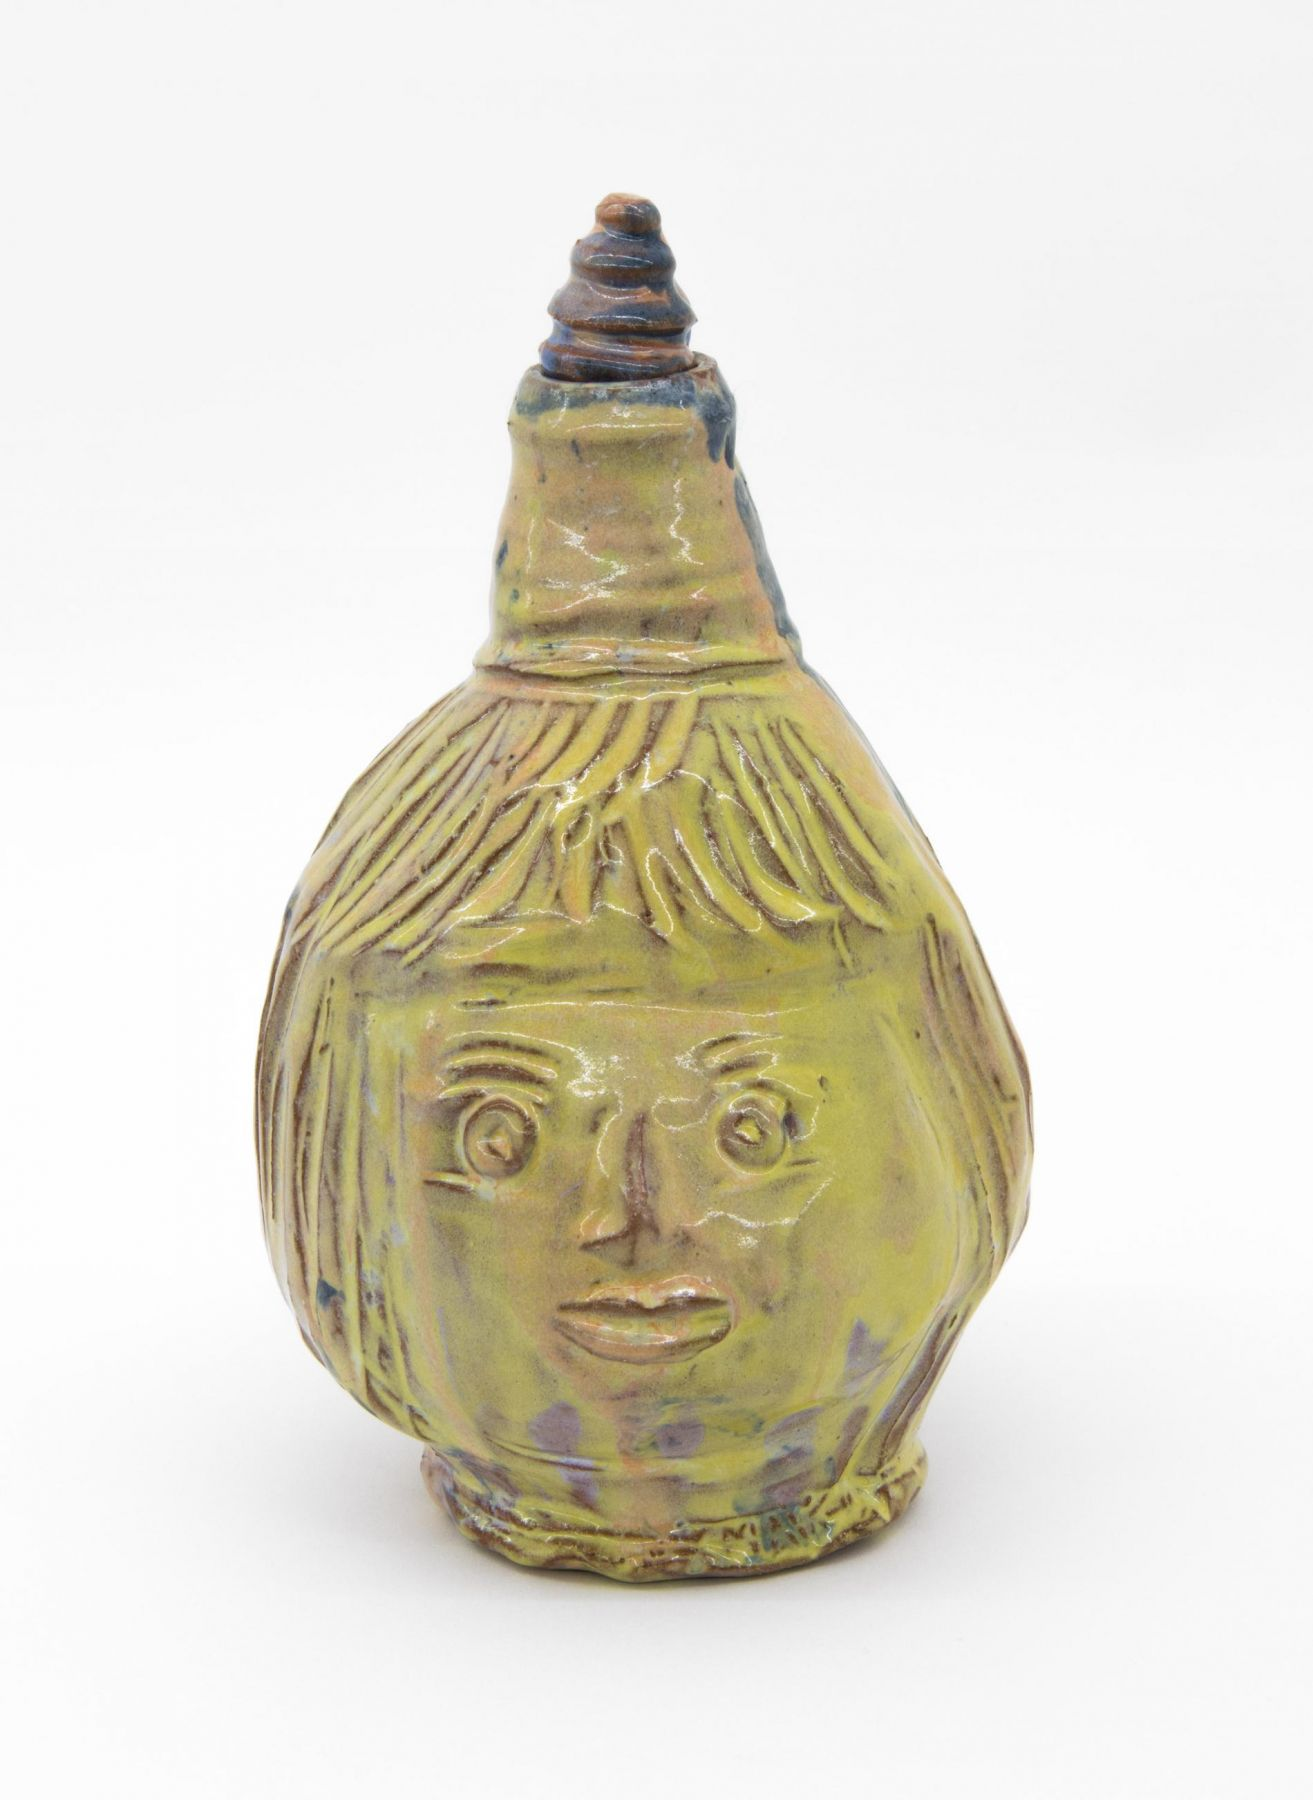 , Golden Child, 2009, Glazed earthenware, 9 1/4 x 6 x 6 in. including lid